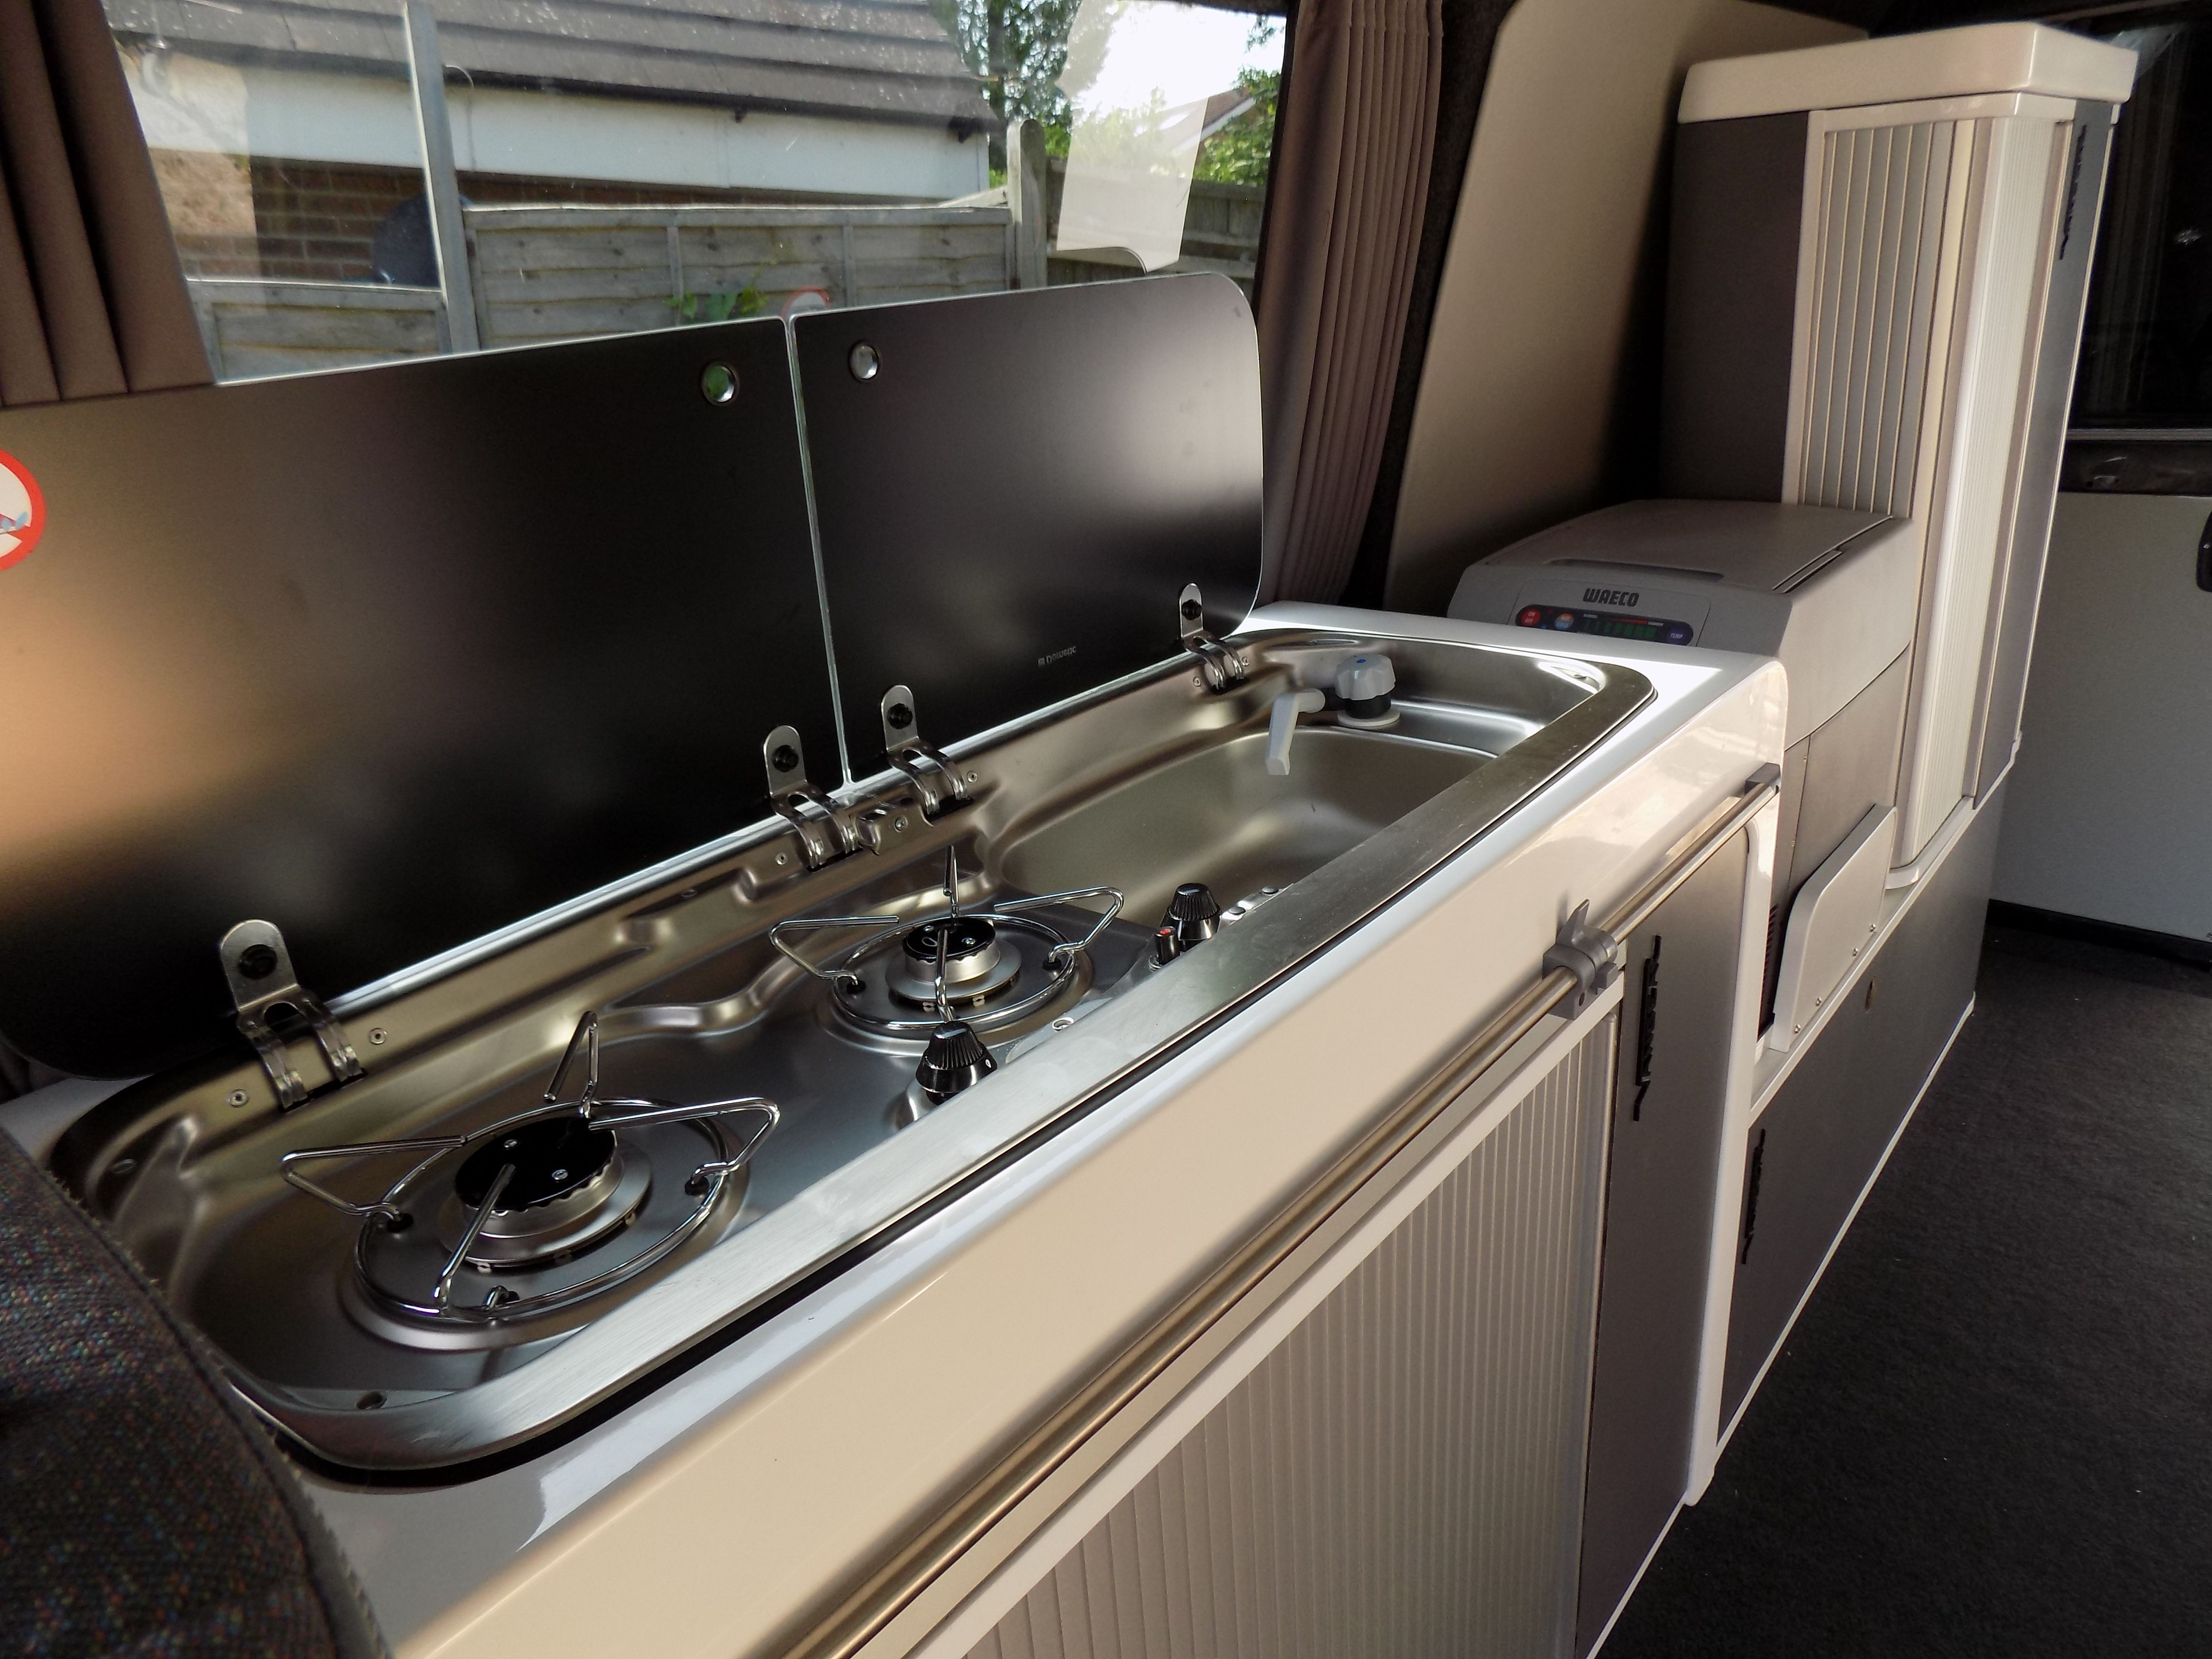 My Favorite Favorite Modular And Kitchen Units For Vans Now I